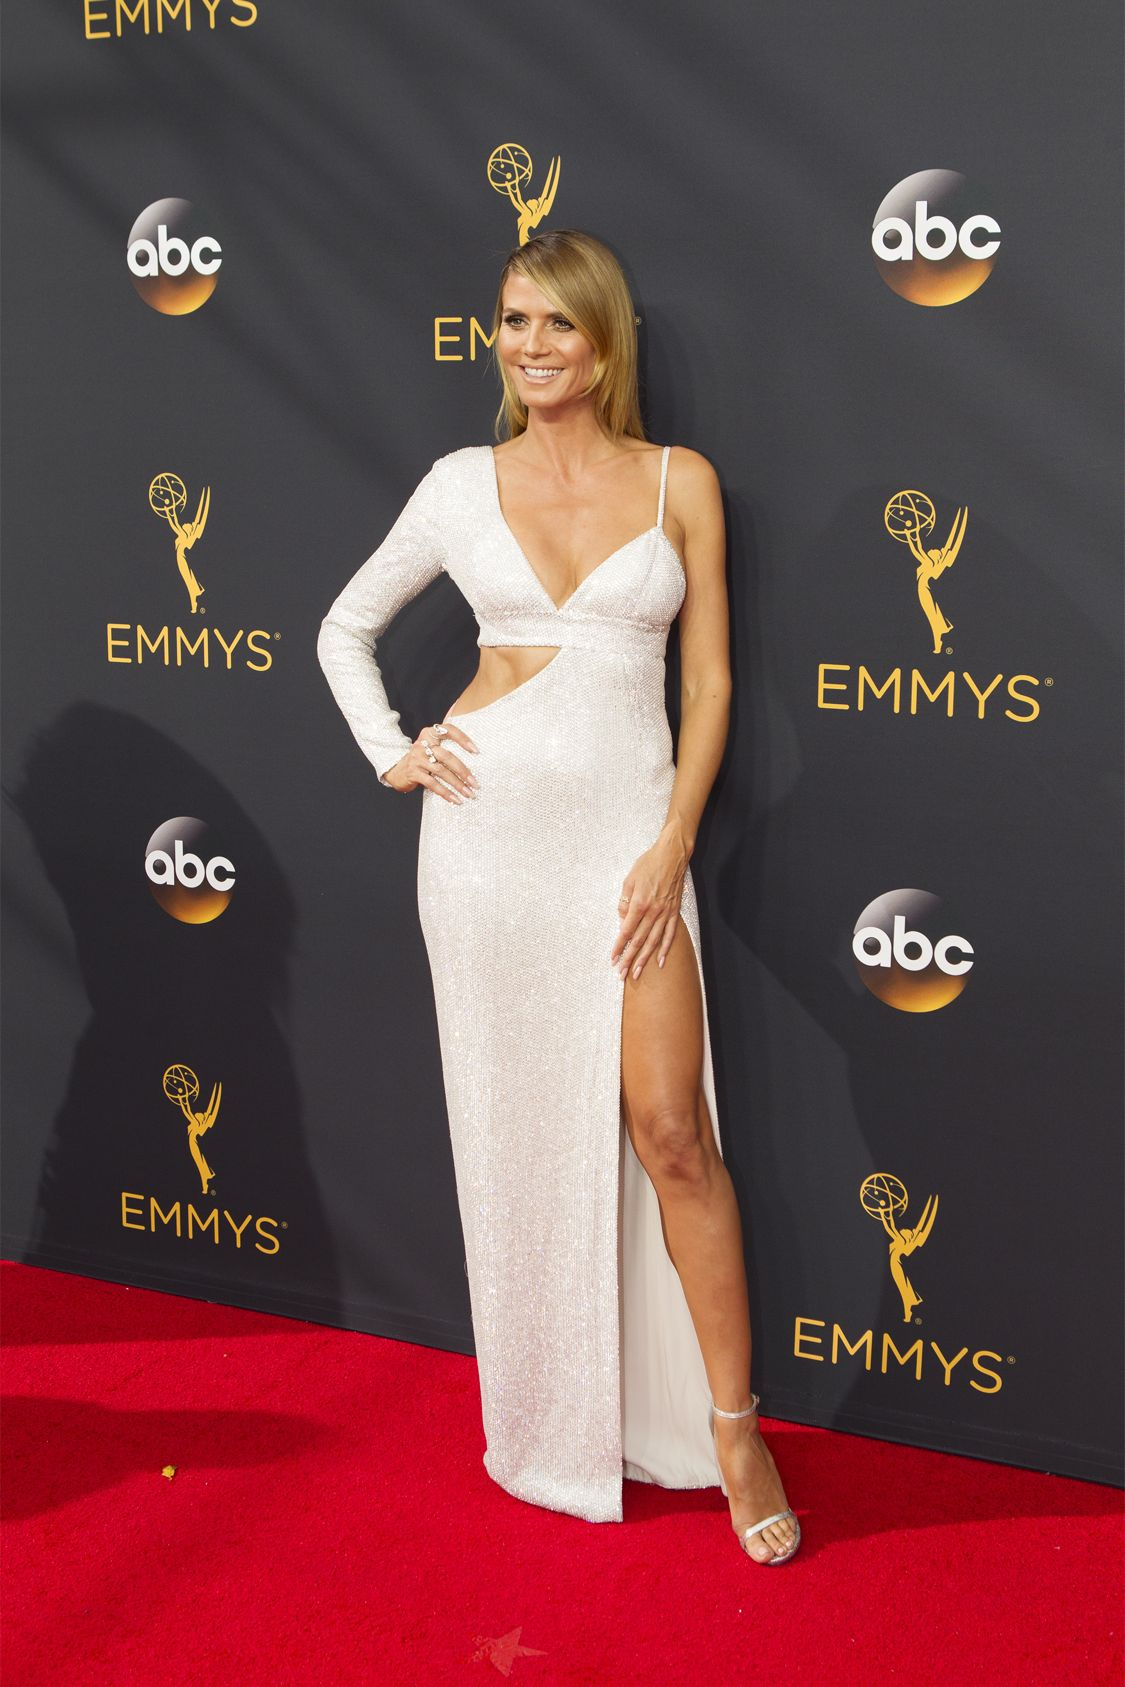 """THE 68TH EMMY(r) AWARDS - """"The 68th Emmy Awards"""" broadcasts live from The Microsoft Theater in Los Angeles, Sunday, September 18 (7:00-11:00 p.m. EDT/4:00-8:00 p.m. PDT), on ABC and is hosted by Jimmy Kimmel. (ABC/Rick Rowell) HEIDI KLUM"""